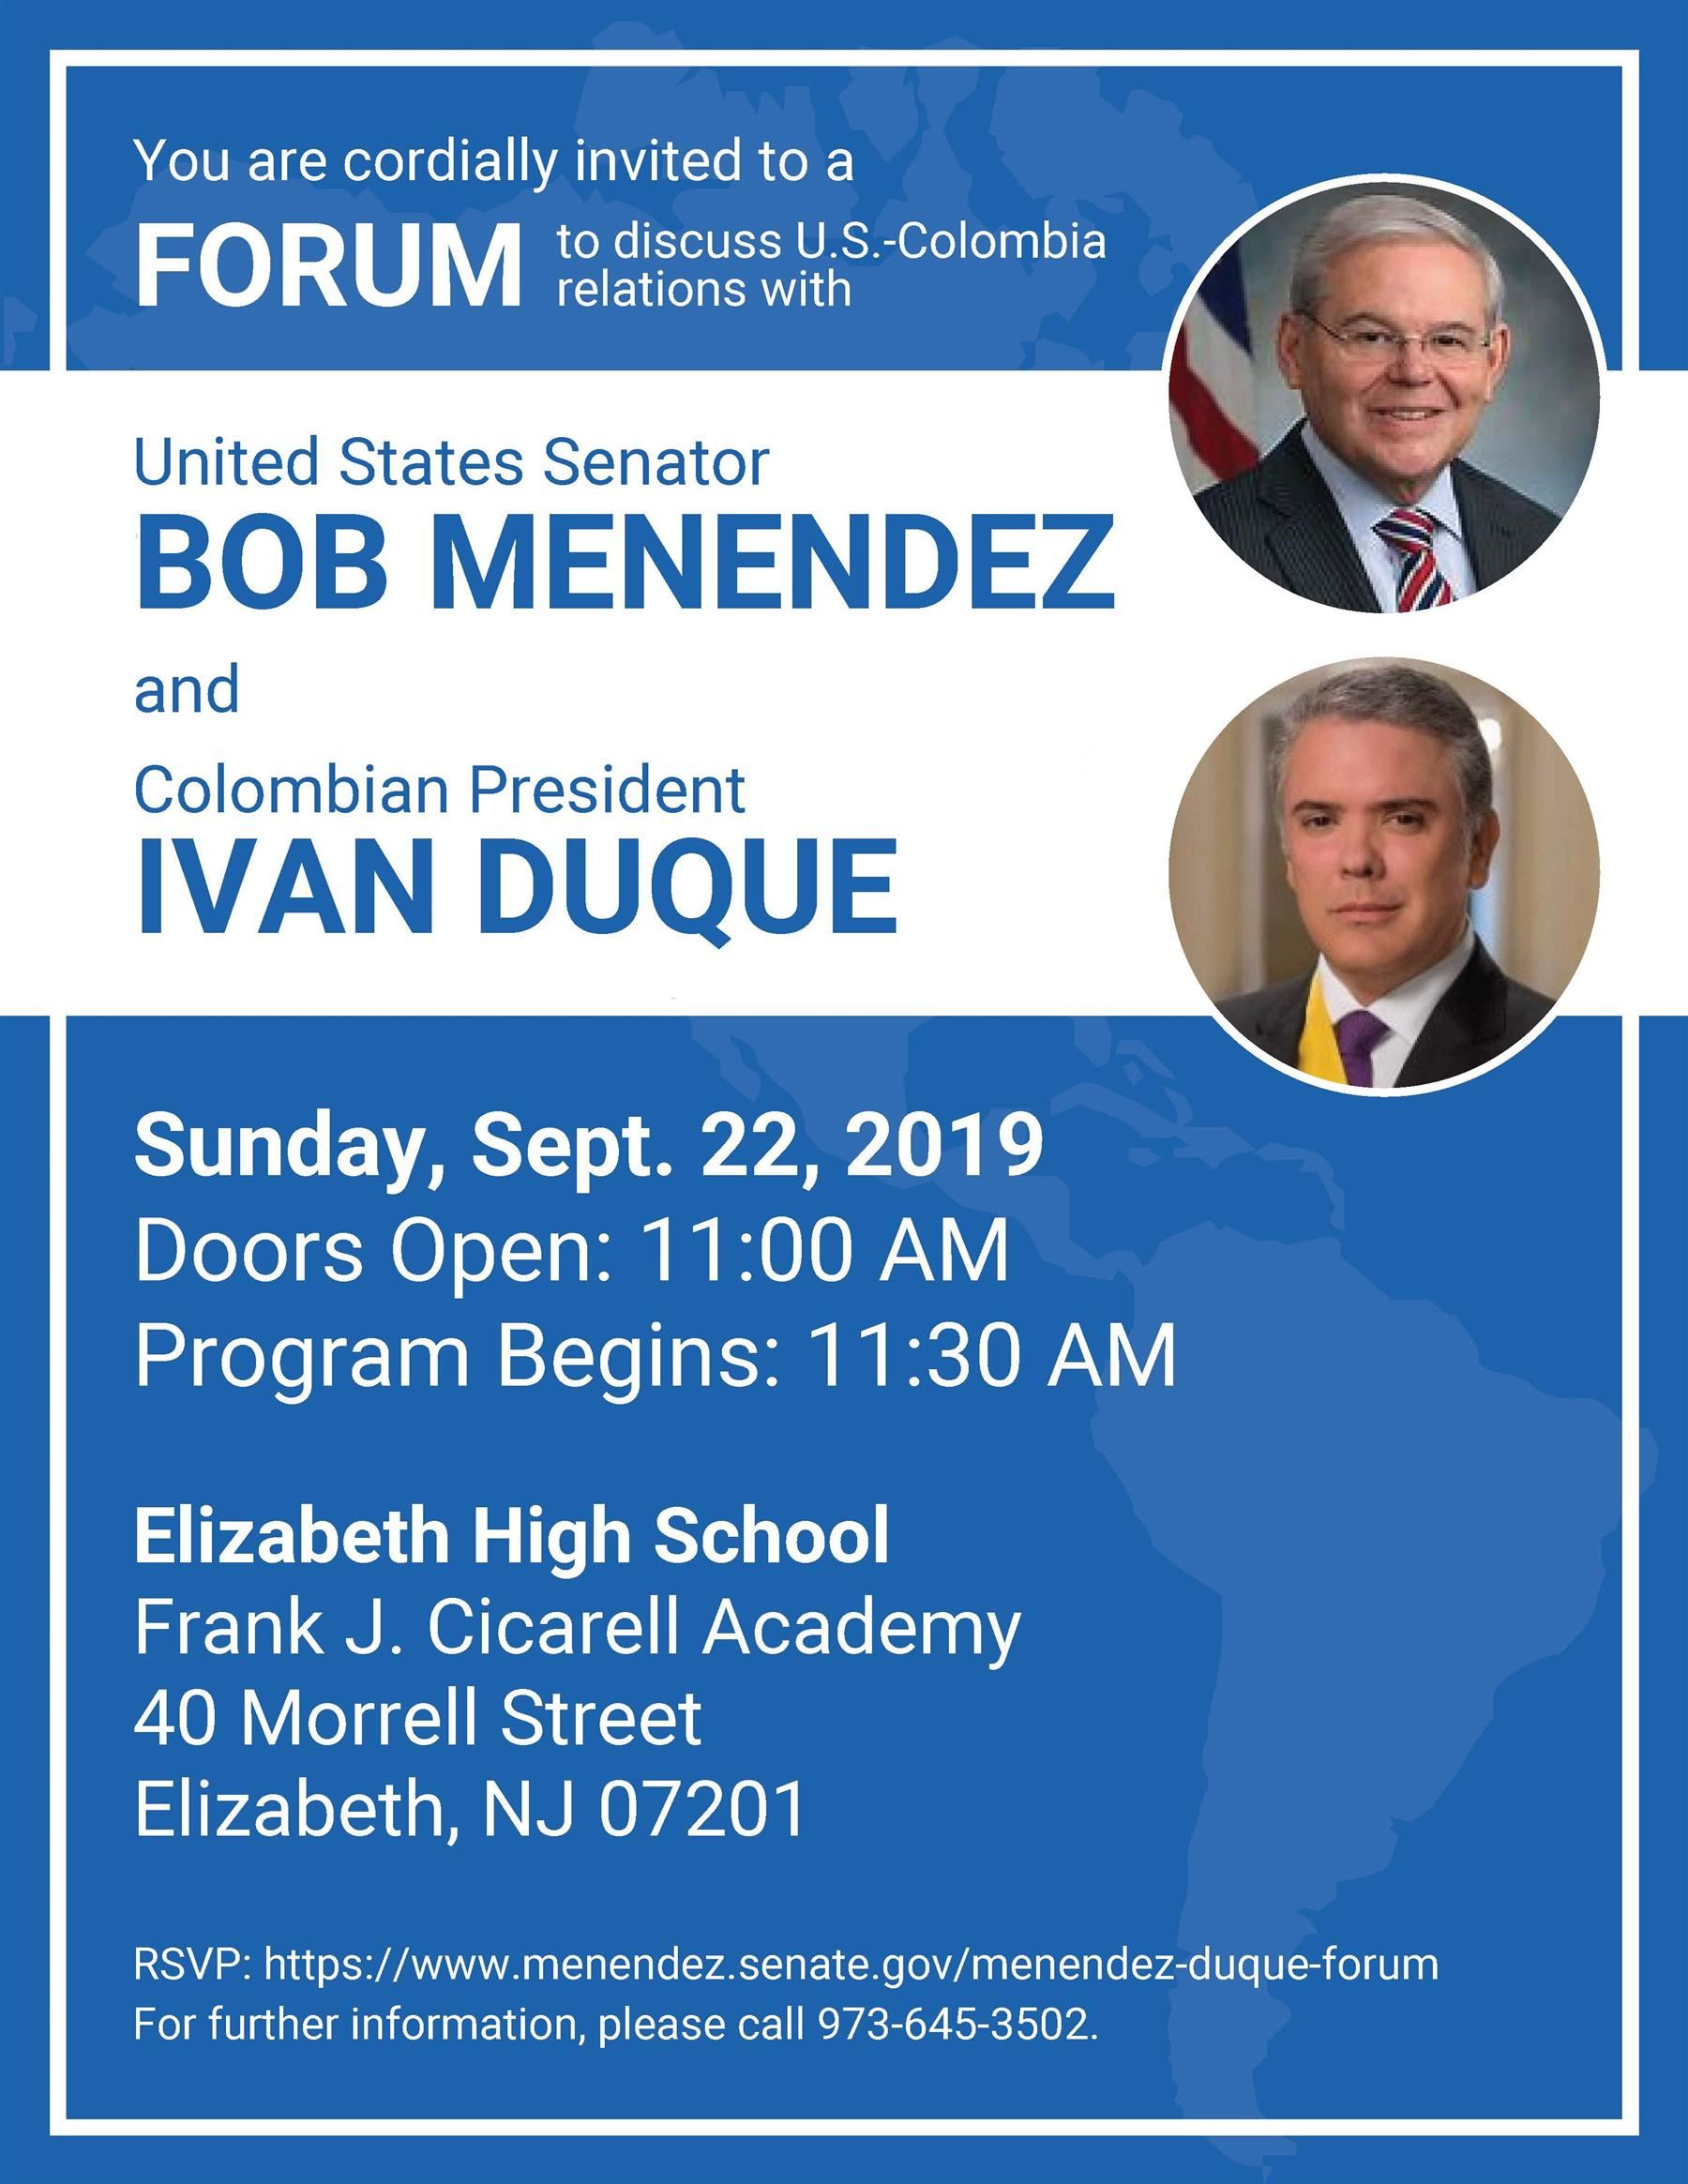 Menendez Duque Forum